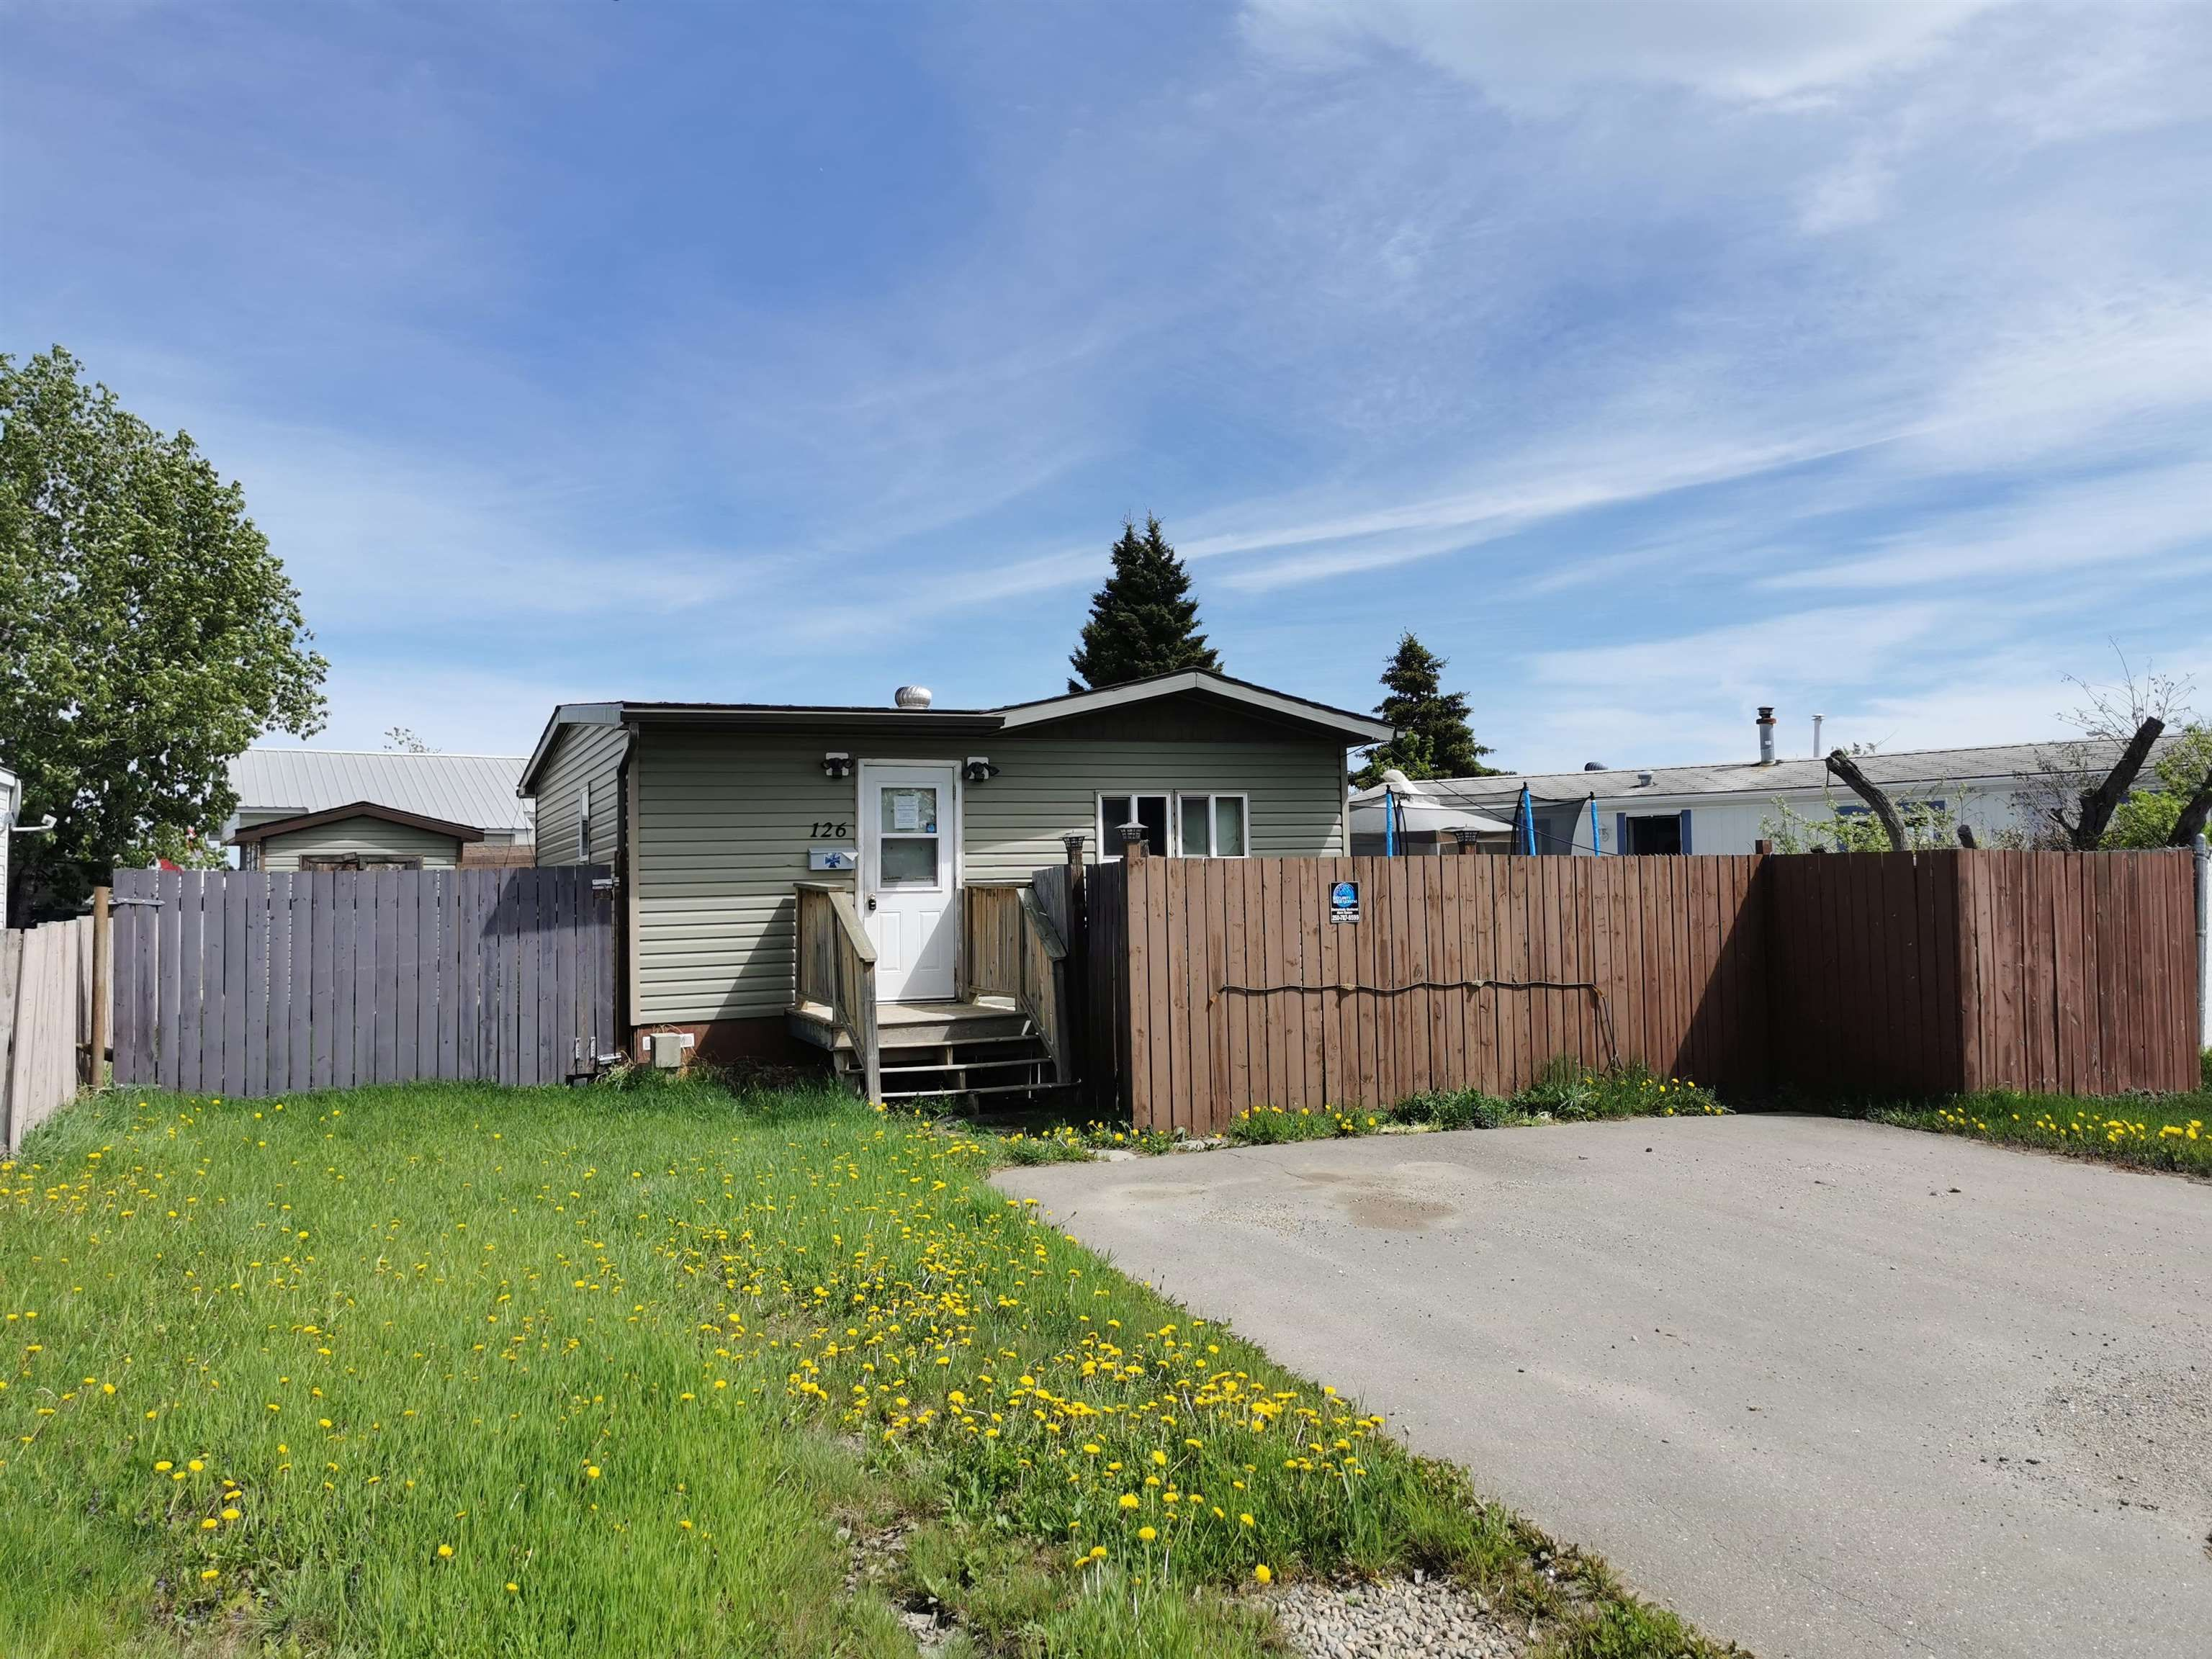 """Main Photo: 126 8420 ALASKA Road in Fort St. John: Fort St. John - City SE Manufactured Home for sale in """"PEACE COUNTRY MOBILE HOME PARK"""" (Fort St. John (Zone 60))  : MLS®# R2623096"""